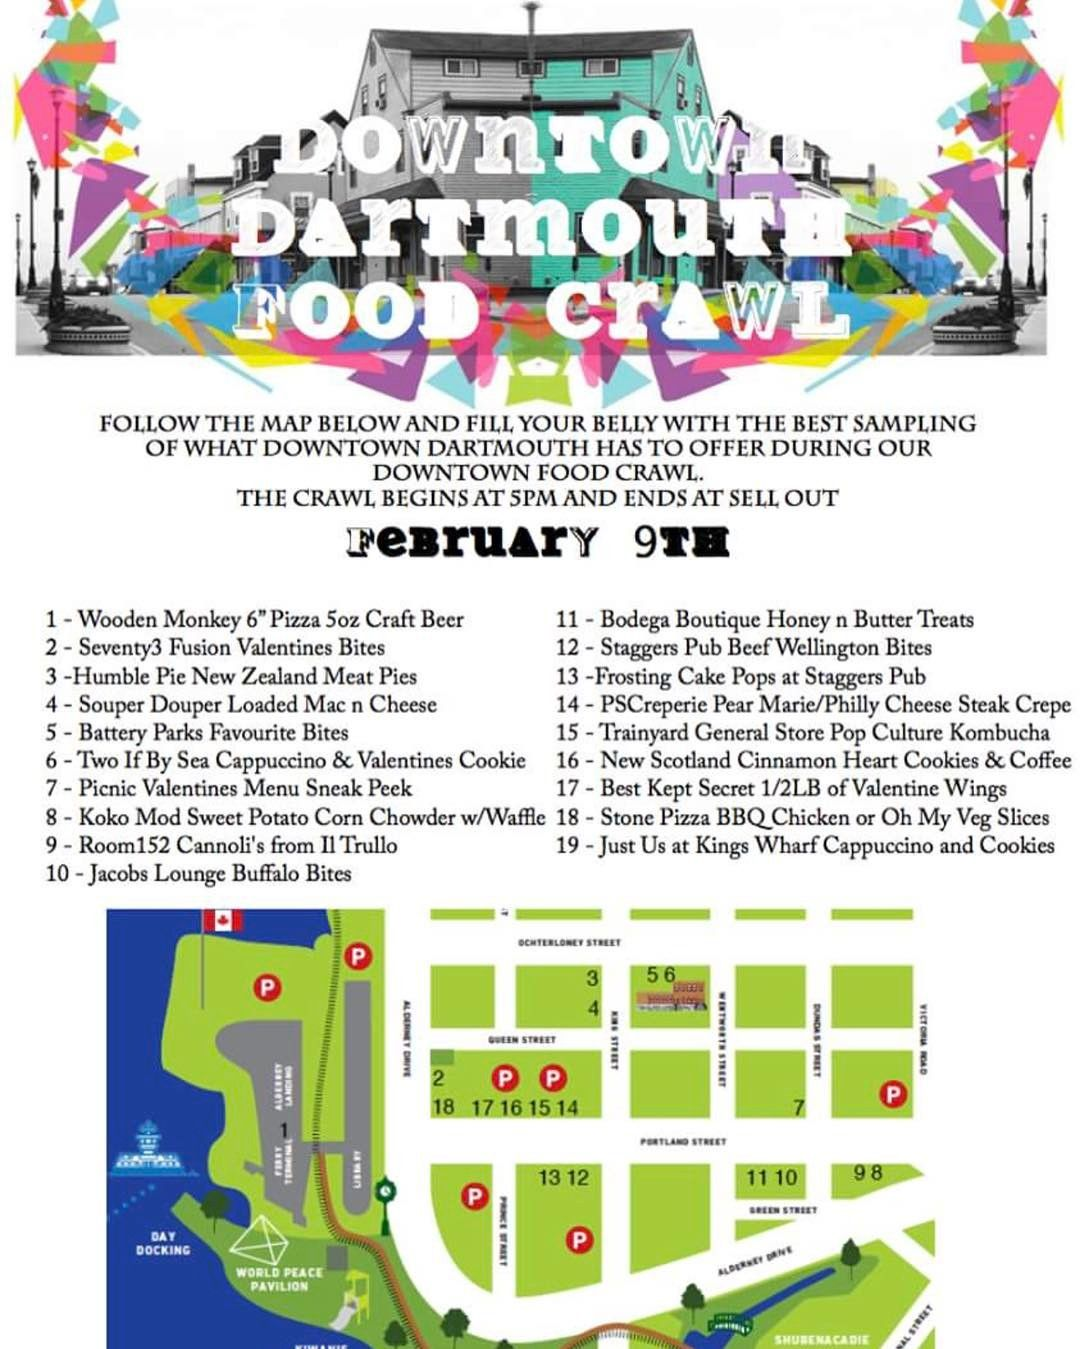 DOWNTOWN DARTMOUTH FOOD CRAWL. TMRO. track them down on fb for the ever evolving list of participants and menu items.